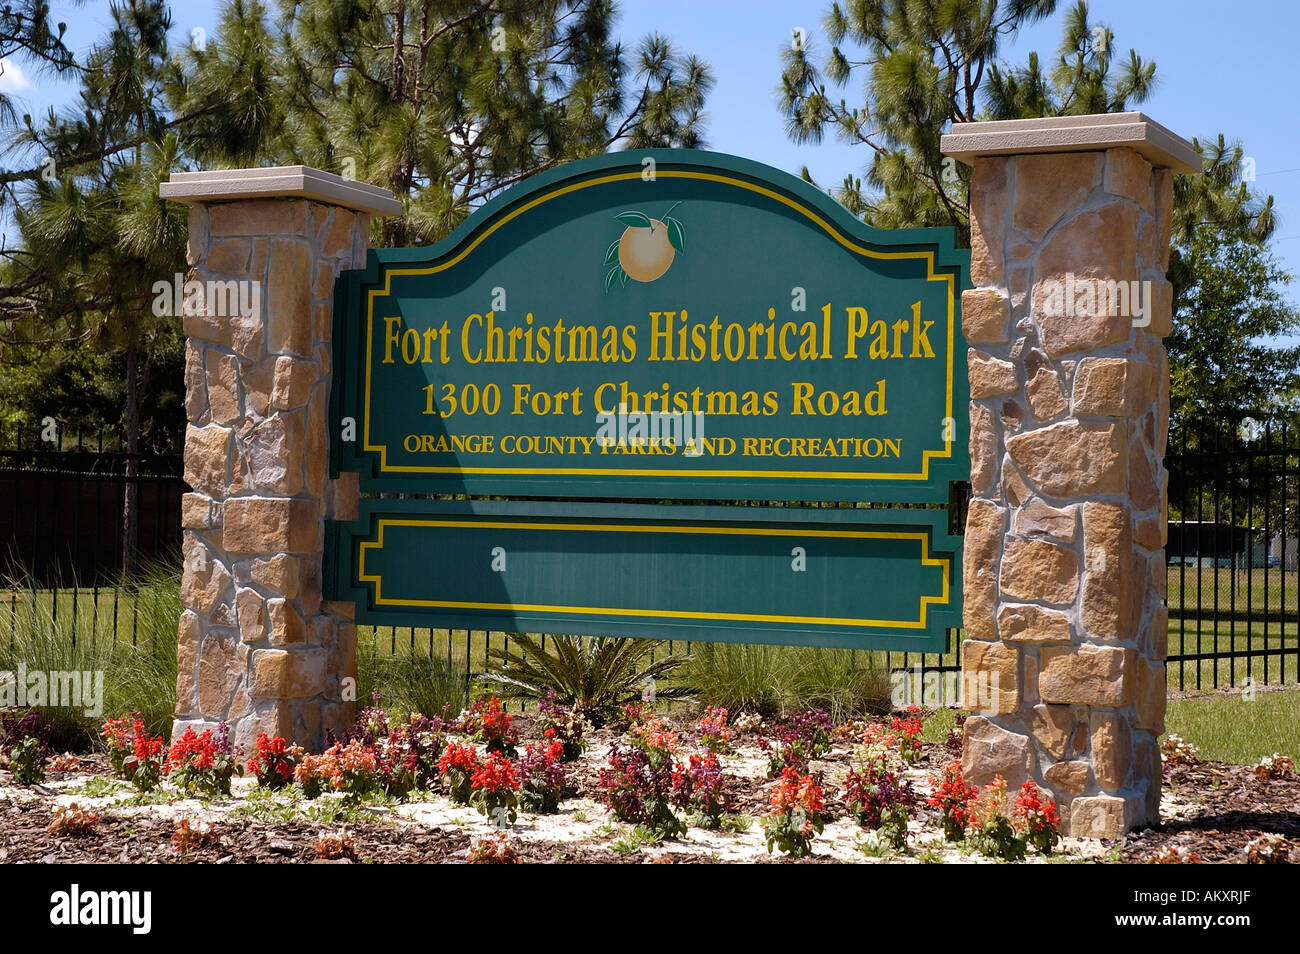 Orlando Florida Fort Christmas sign at Fort Christmas Historical ...